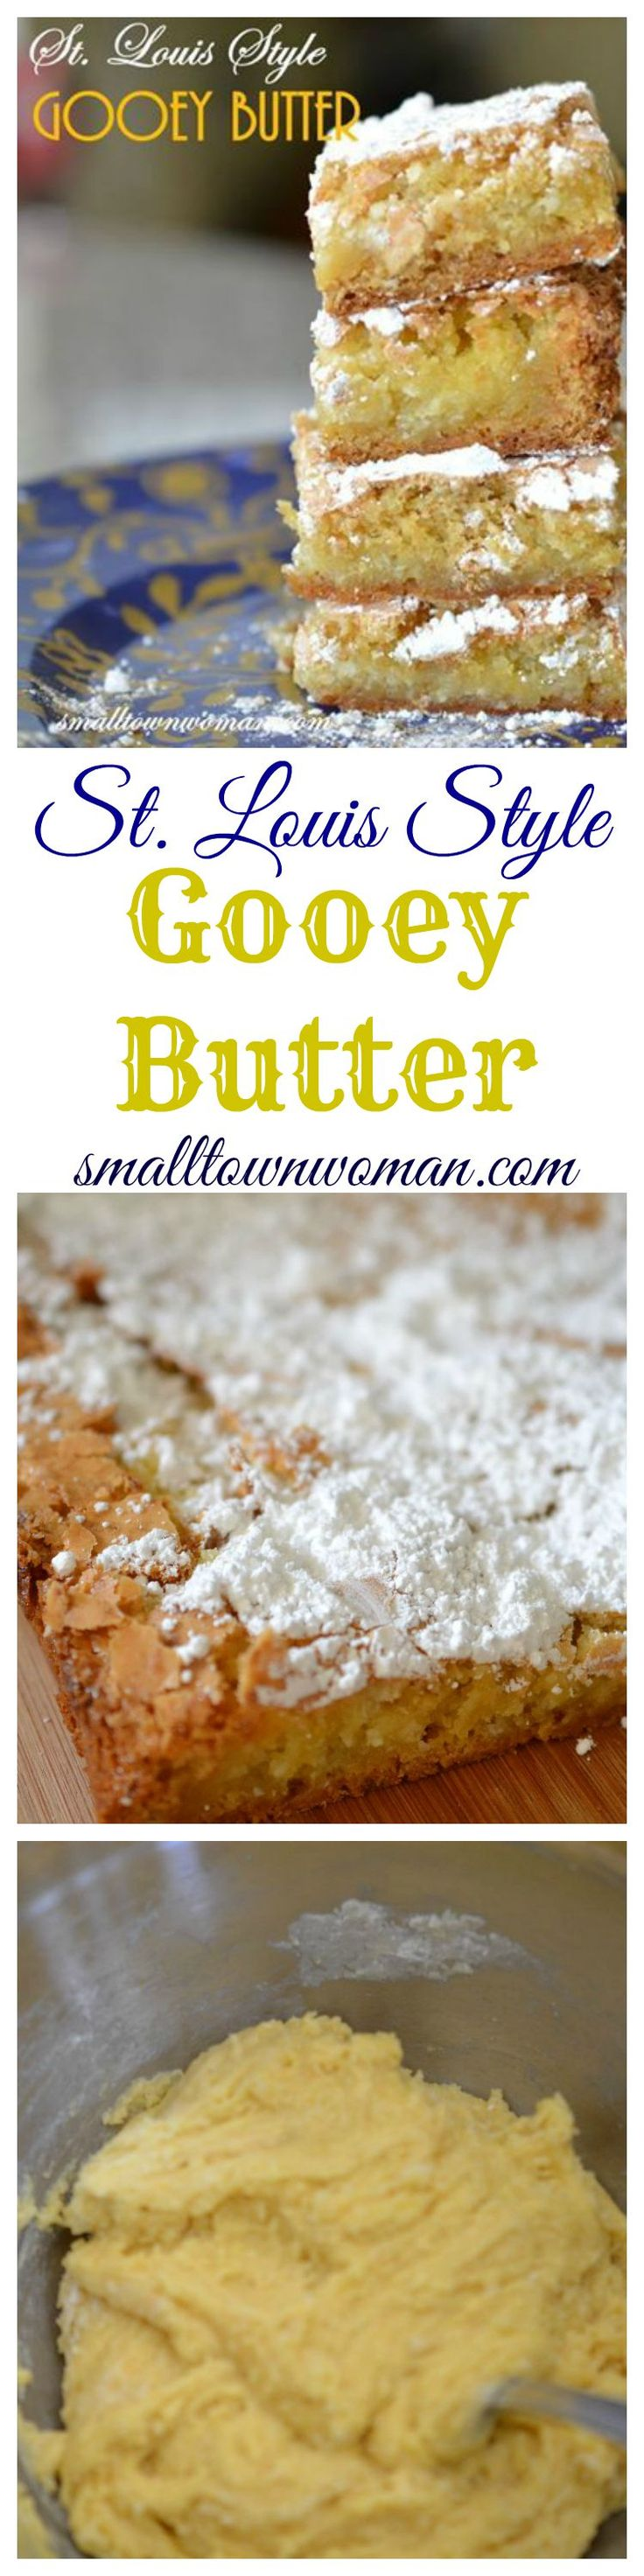 If you have never tried a Gooey Butter Cake you must really treat yourself!!  This is one of those regional recipes.  It is a St. Louis original recipe or at least that is what I have always been told and I believe to be true.  You will not be disappointed at all.  You will fall madly in love with this recipe.